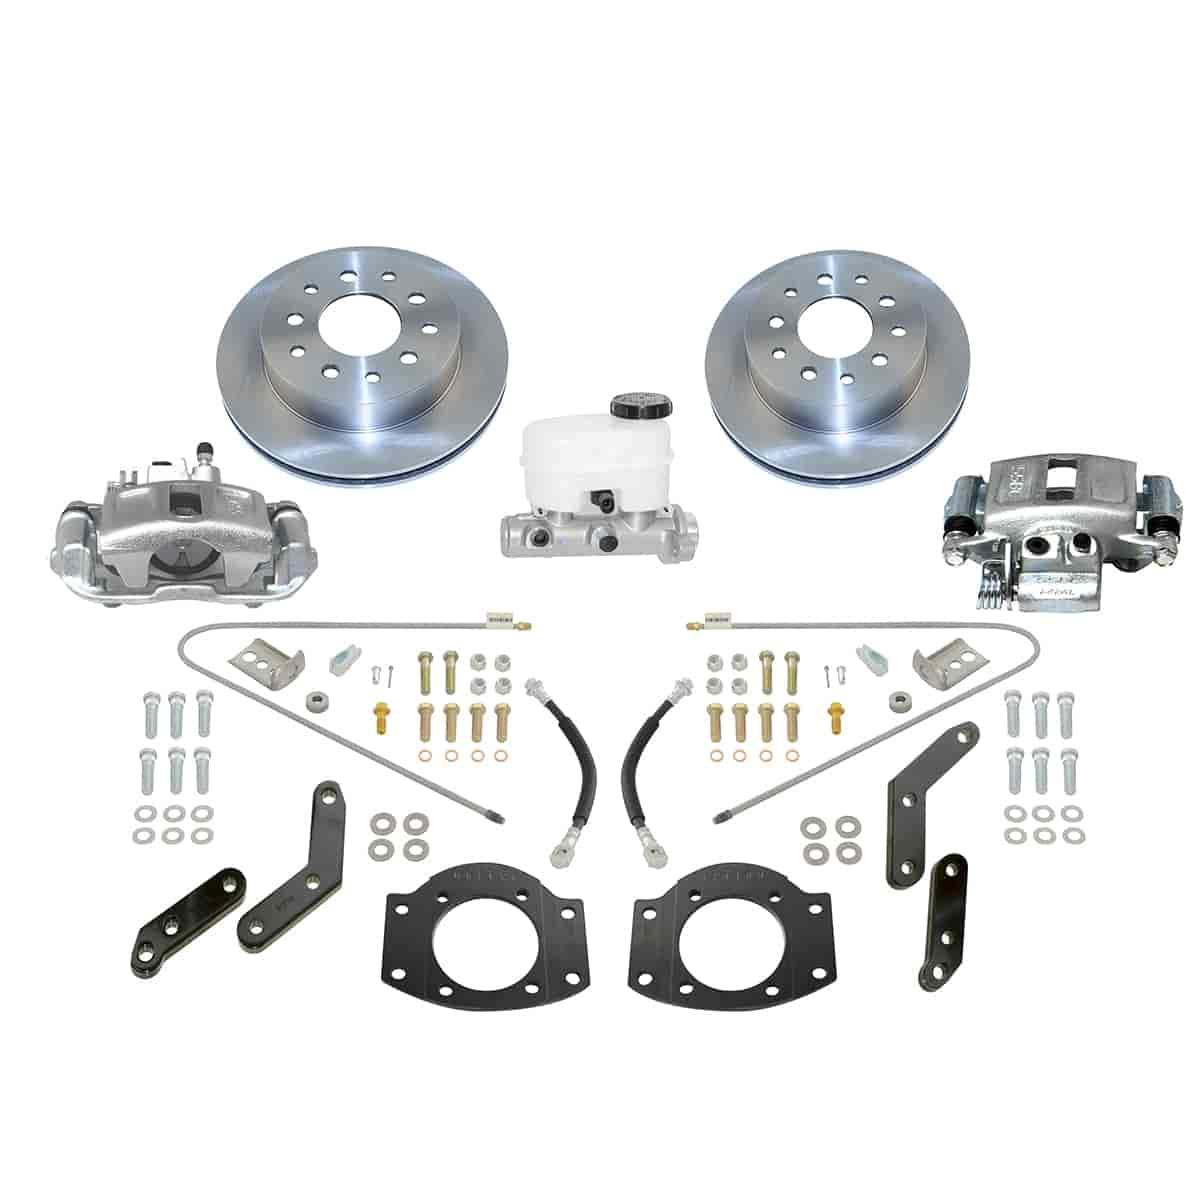 Stainless Steel Brakes A126-2 - Stainless Steel Brakes Single Piston Rear Drum to Disc Brake Conversion Kits